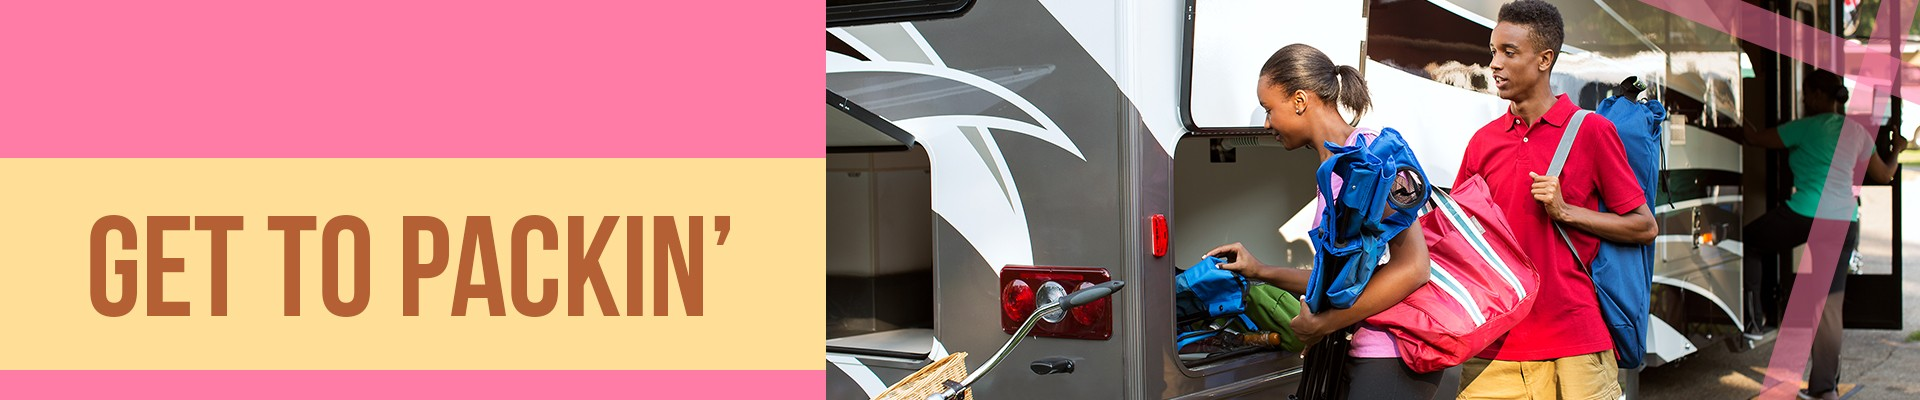 First steps after your first RV: Get to packin' to make your RV feel like home